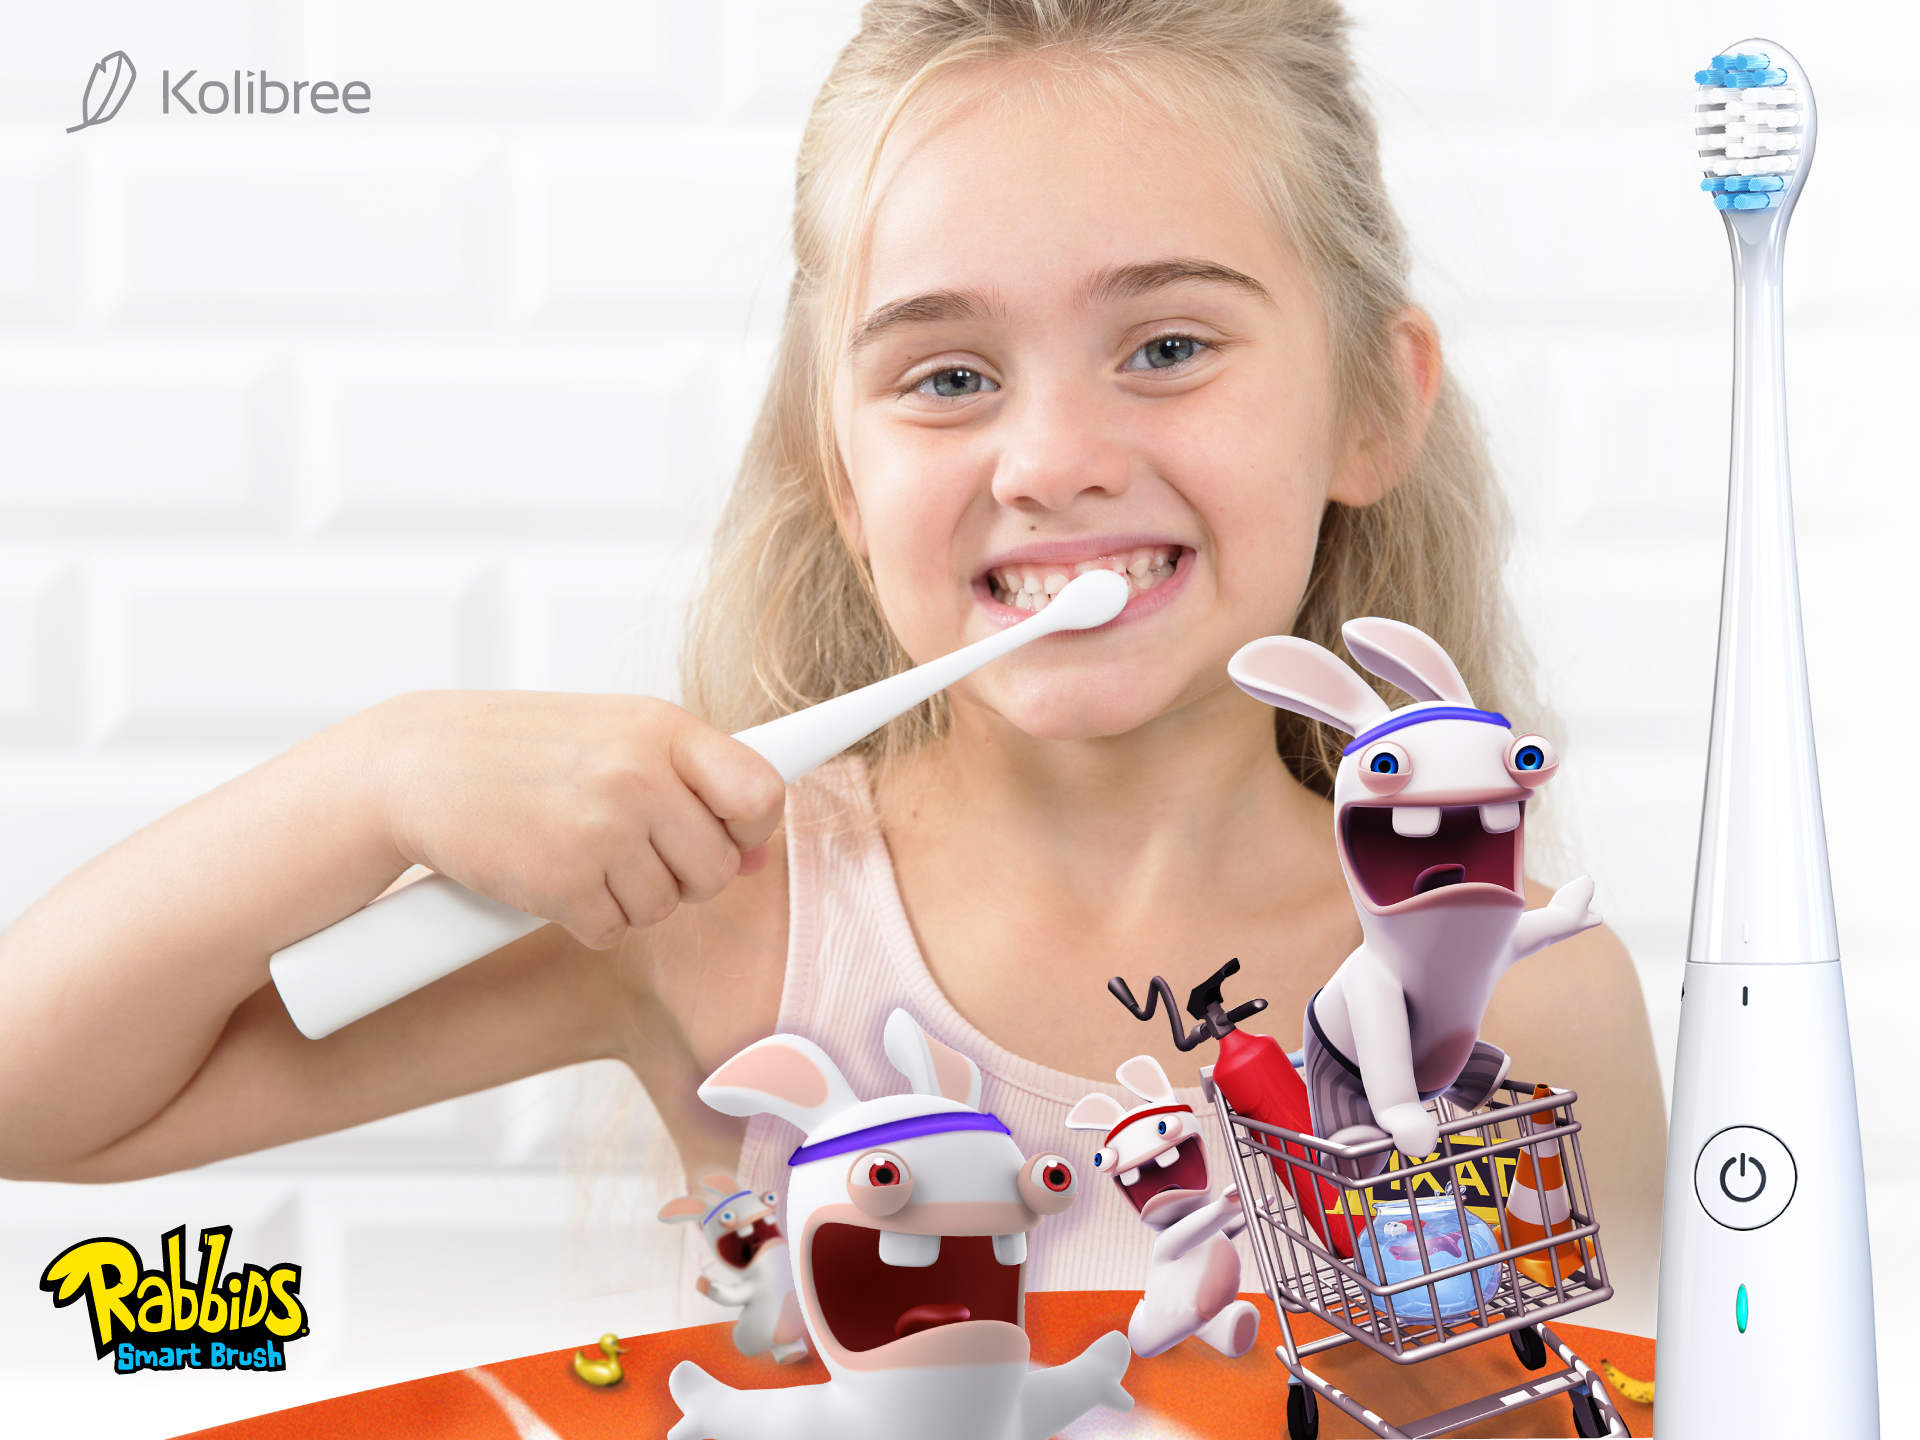 Help Kids Kolibree And Ubisoft Team Up To Help Kids Prevent Cavities